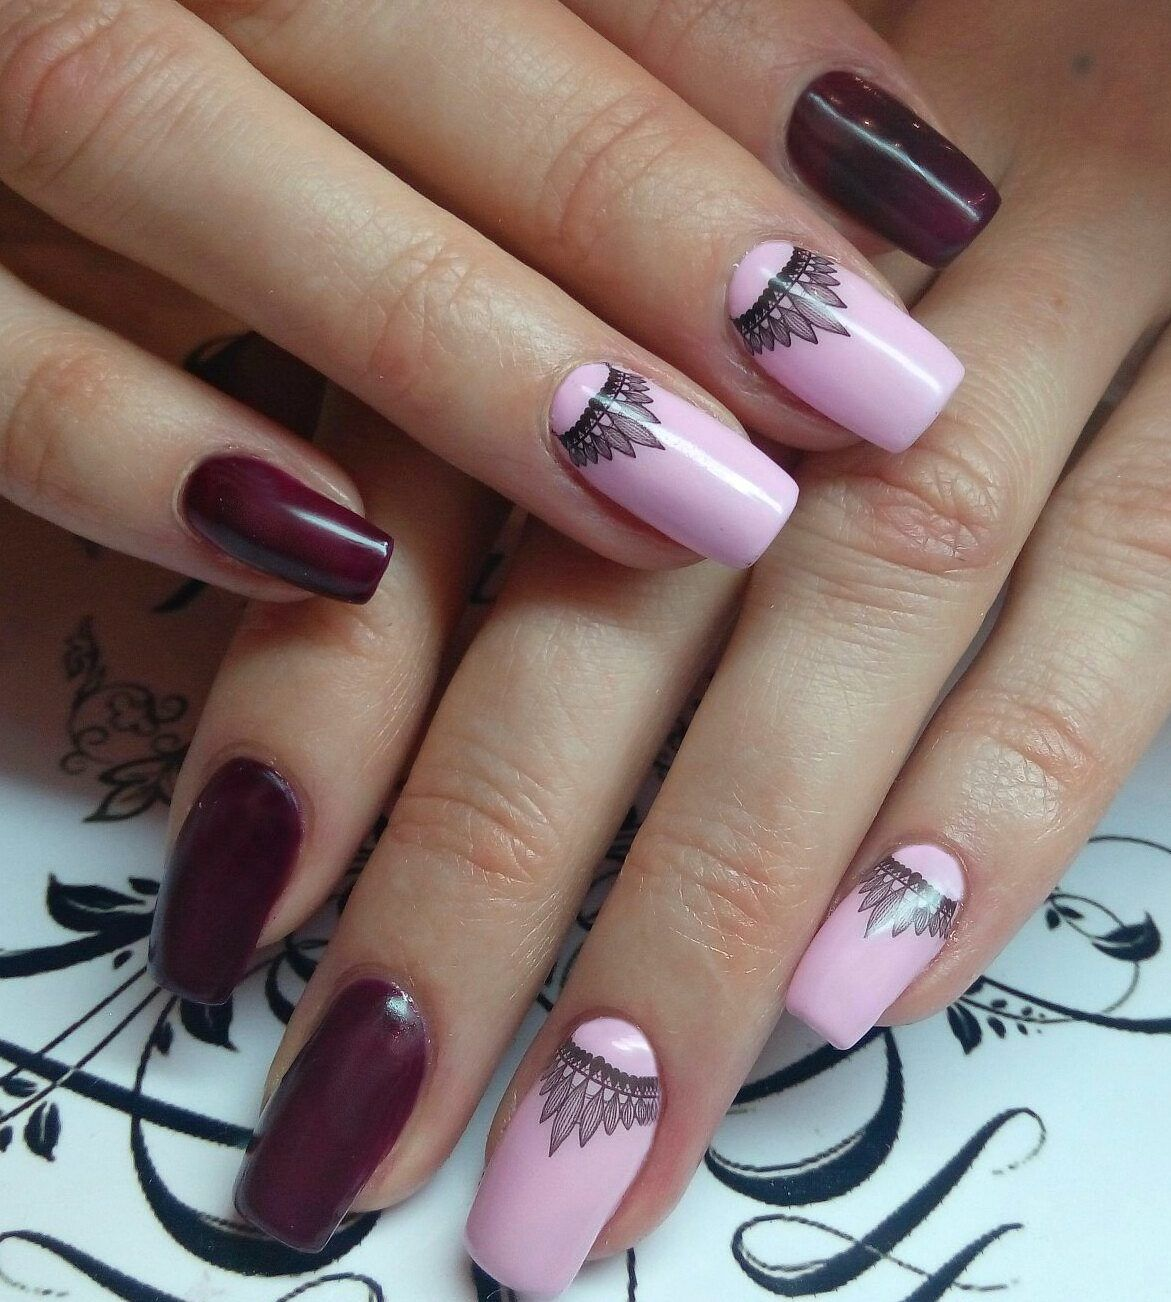 Nail art 3583 best nail art designs gallery maroon nails nail art 3583 best nail art designs gallery prinsesfo Gallery